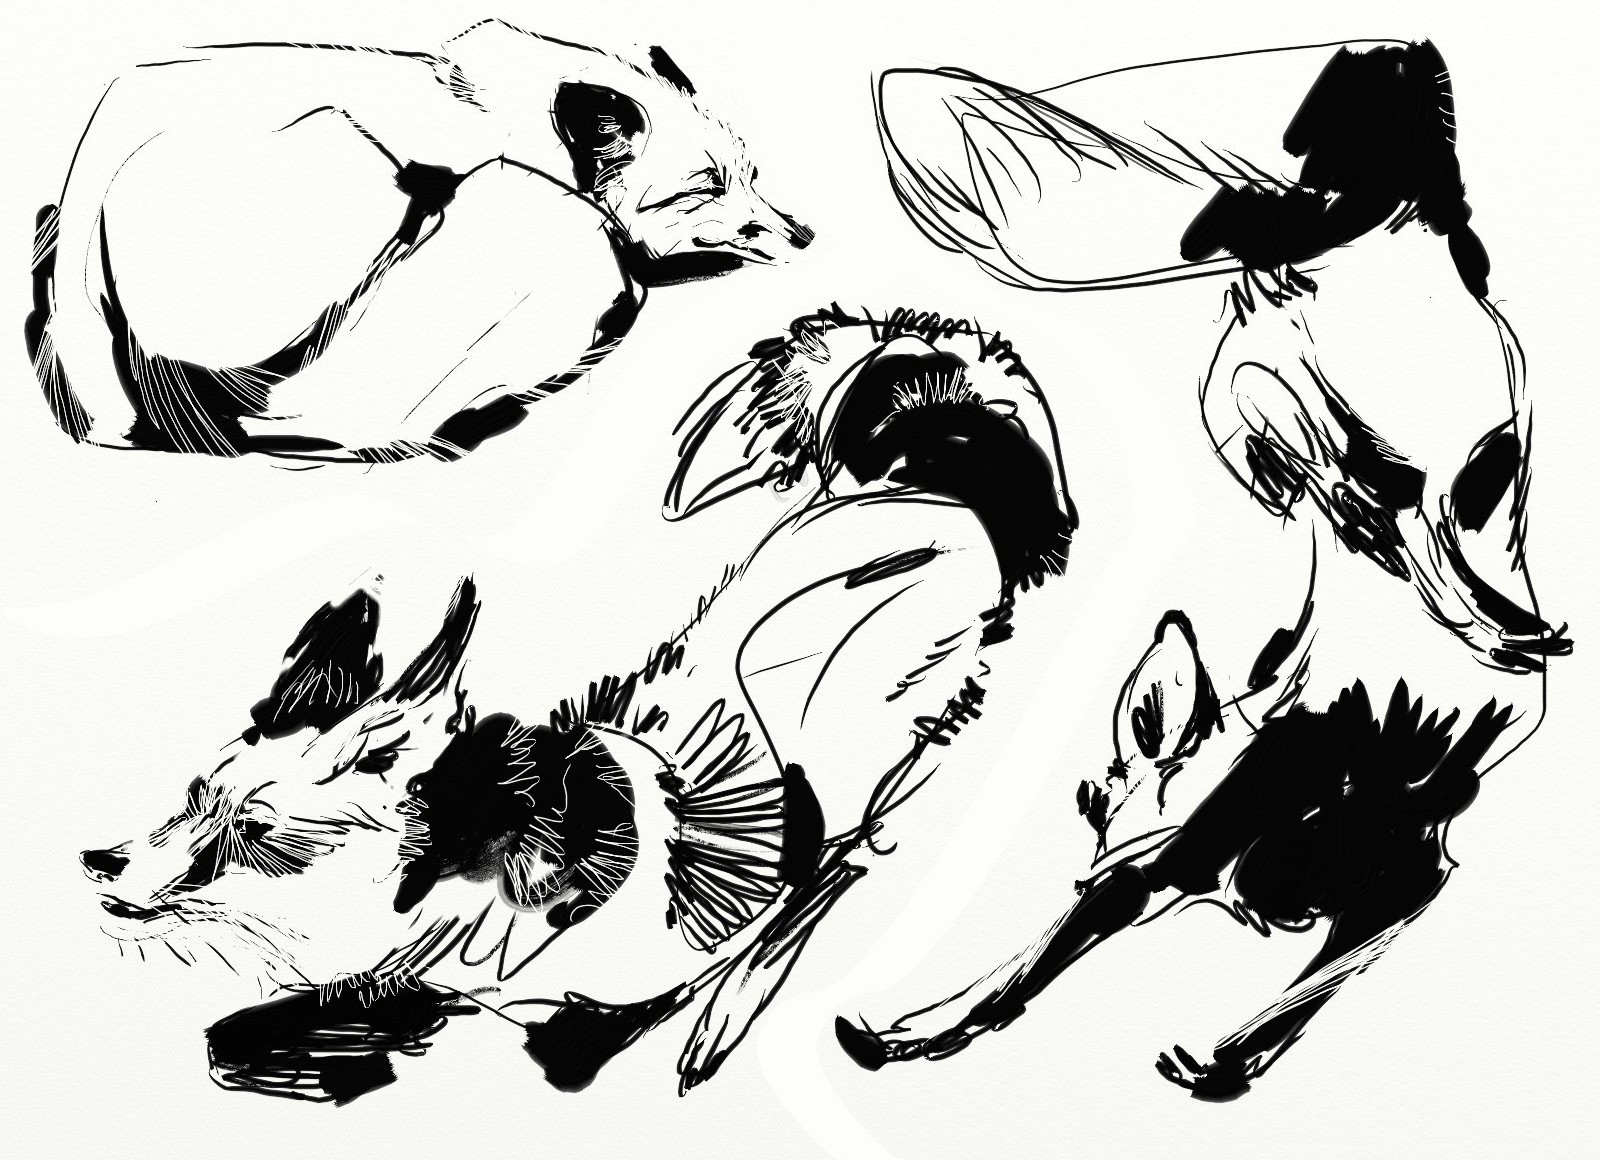 Line Drawing Penguin : Animal pattern drawing at getdrawings.com free for personal use